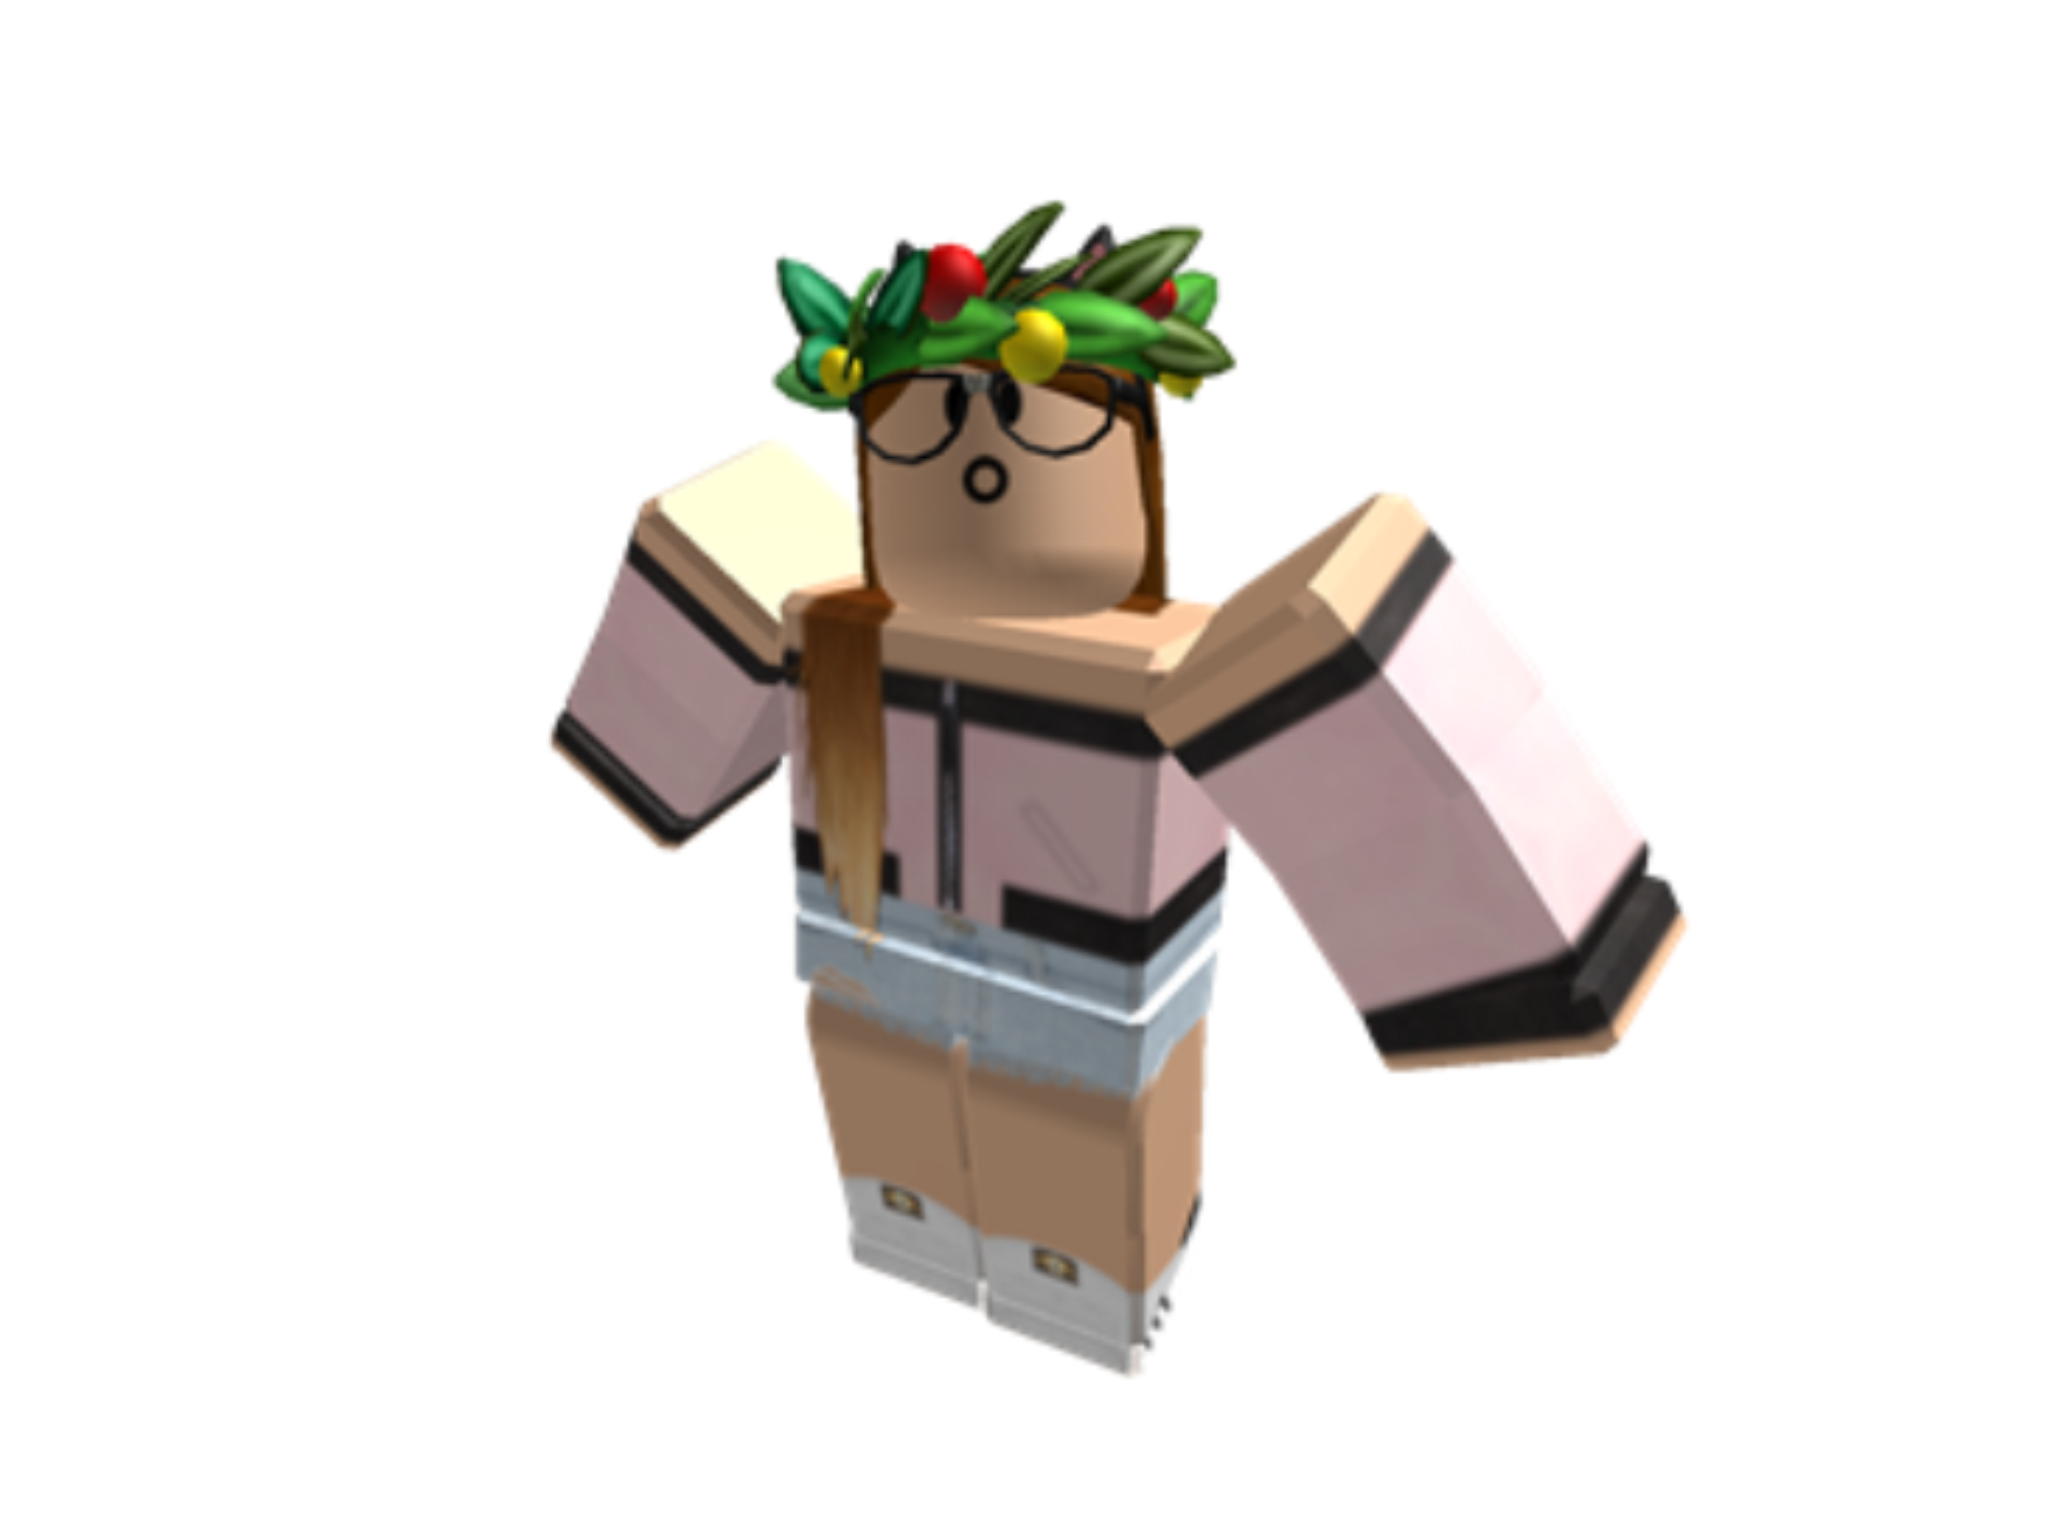 Pin By April Tavaglione On Roblox With Images Roblox Roblox